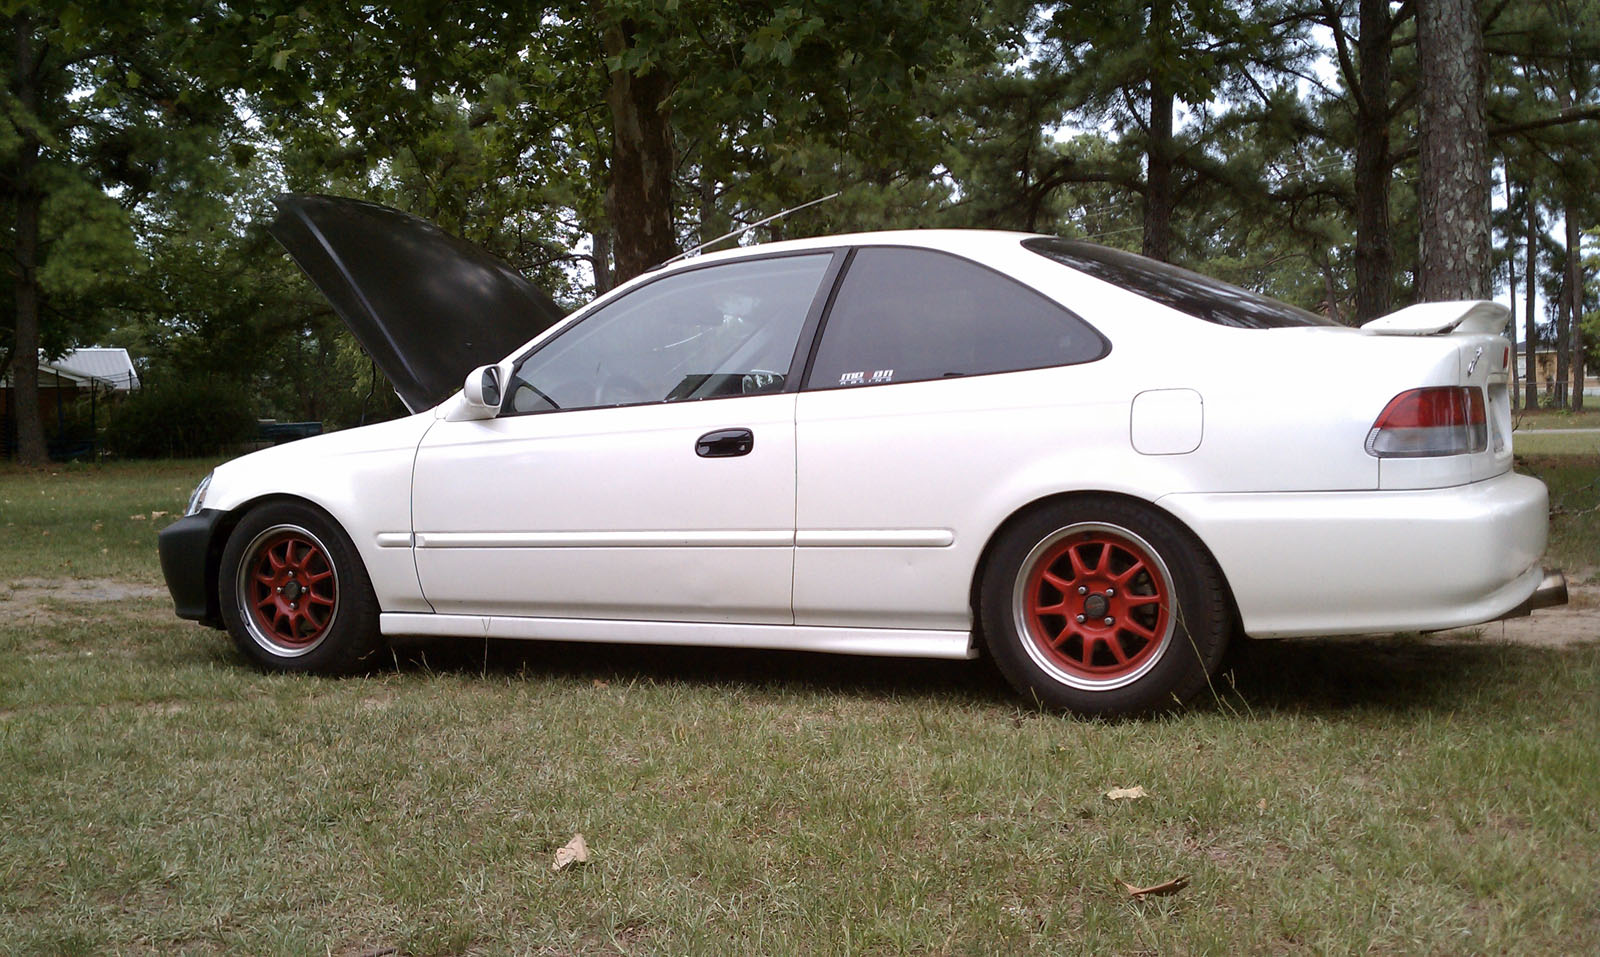 2000 honda civic si for sale clanton alabama. Black Bedroom Furniture Sets. Home Design Ideas